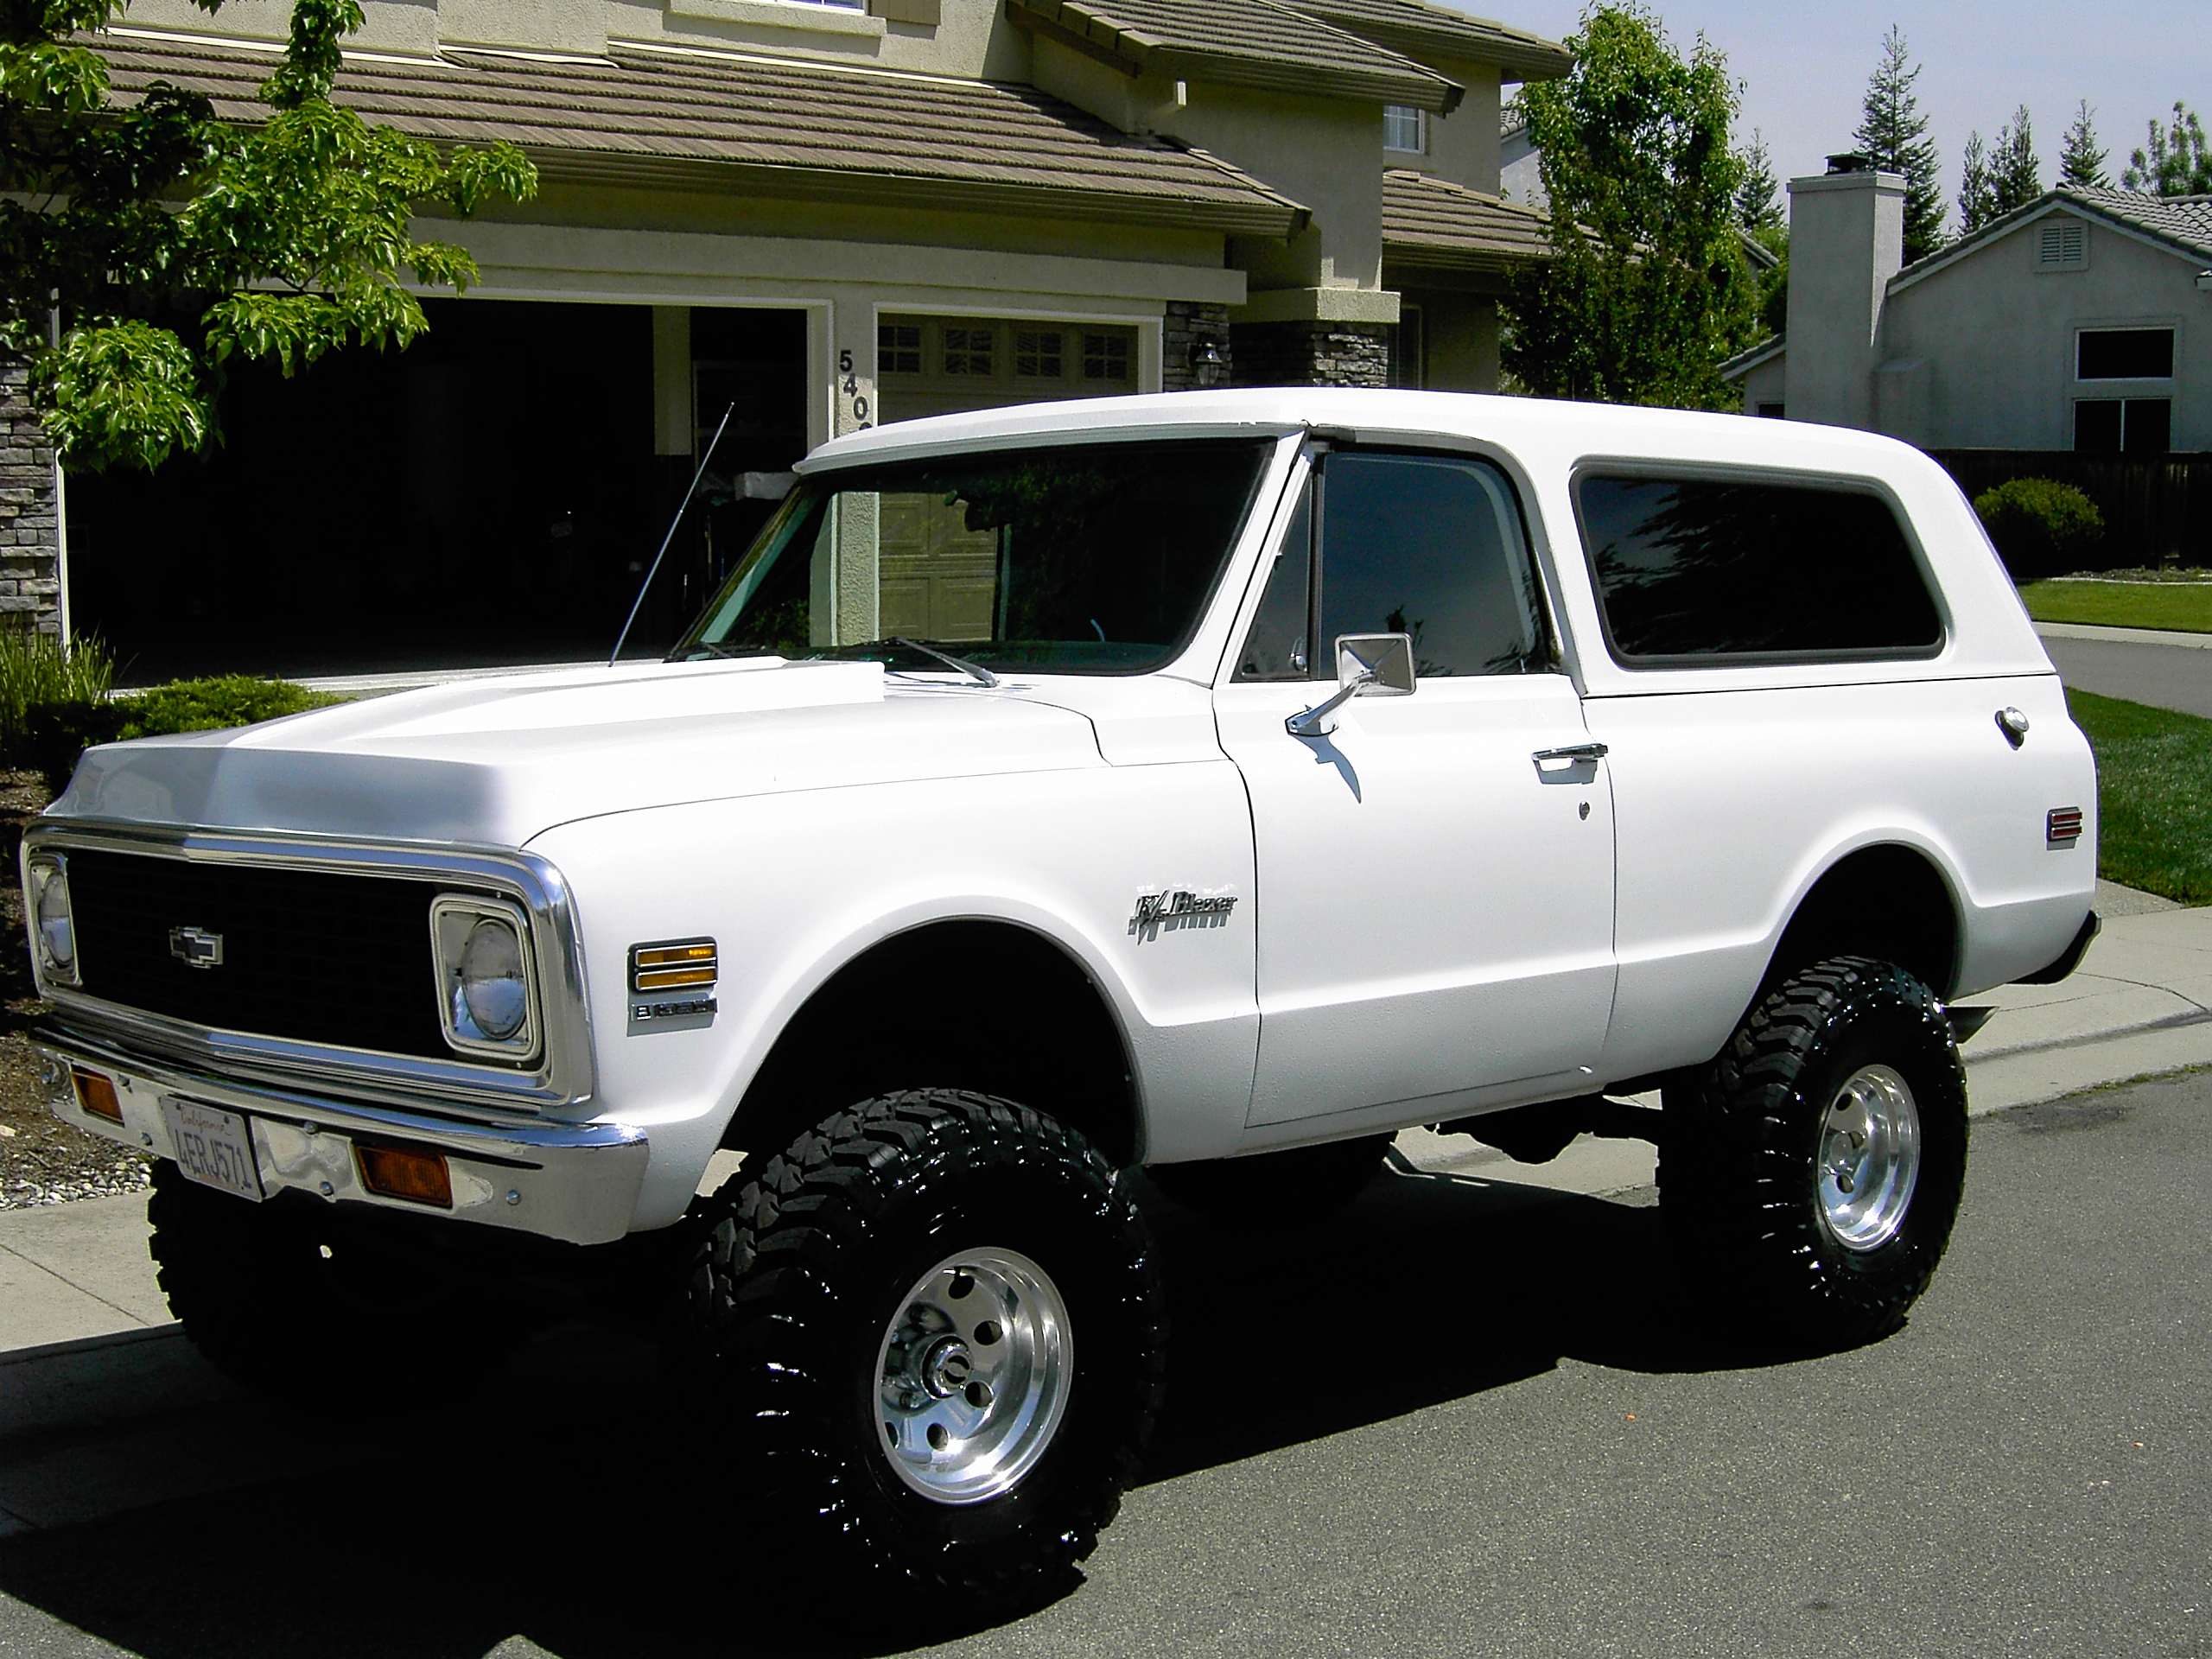 72 Chevy Blazer For Sale 2 Wheel Drive in addition 6 Pin Wiring Diagram Egr Valve moreover 6 0 Powerstroke Fuel Line likewise Can Bus Connectors Wiring Diagram moreover 92 S10 Fuel Pump Wiring Diagram. on chevy fuel pump wiring